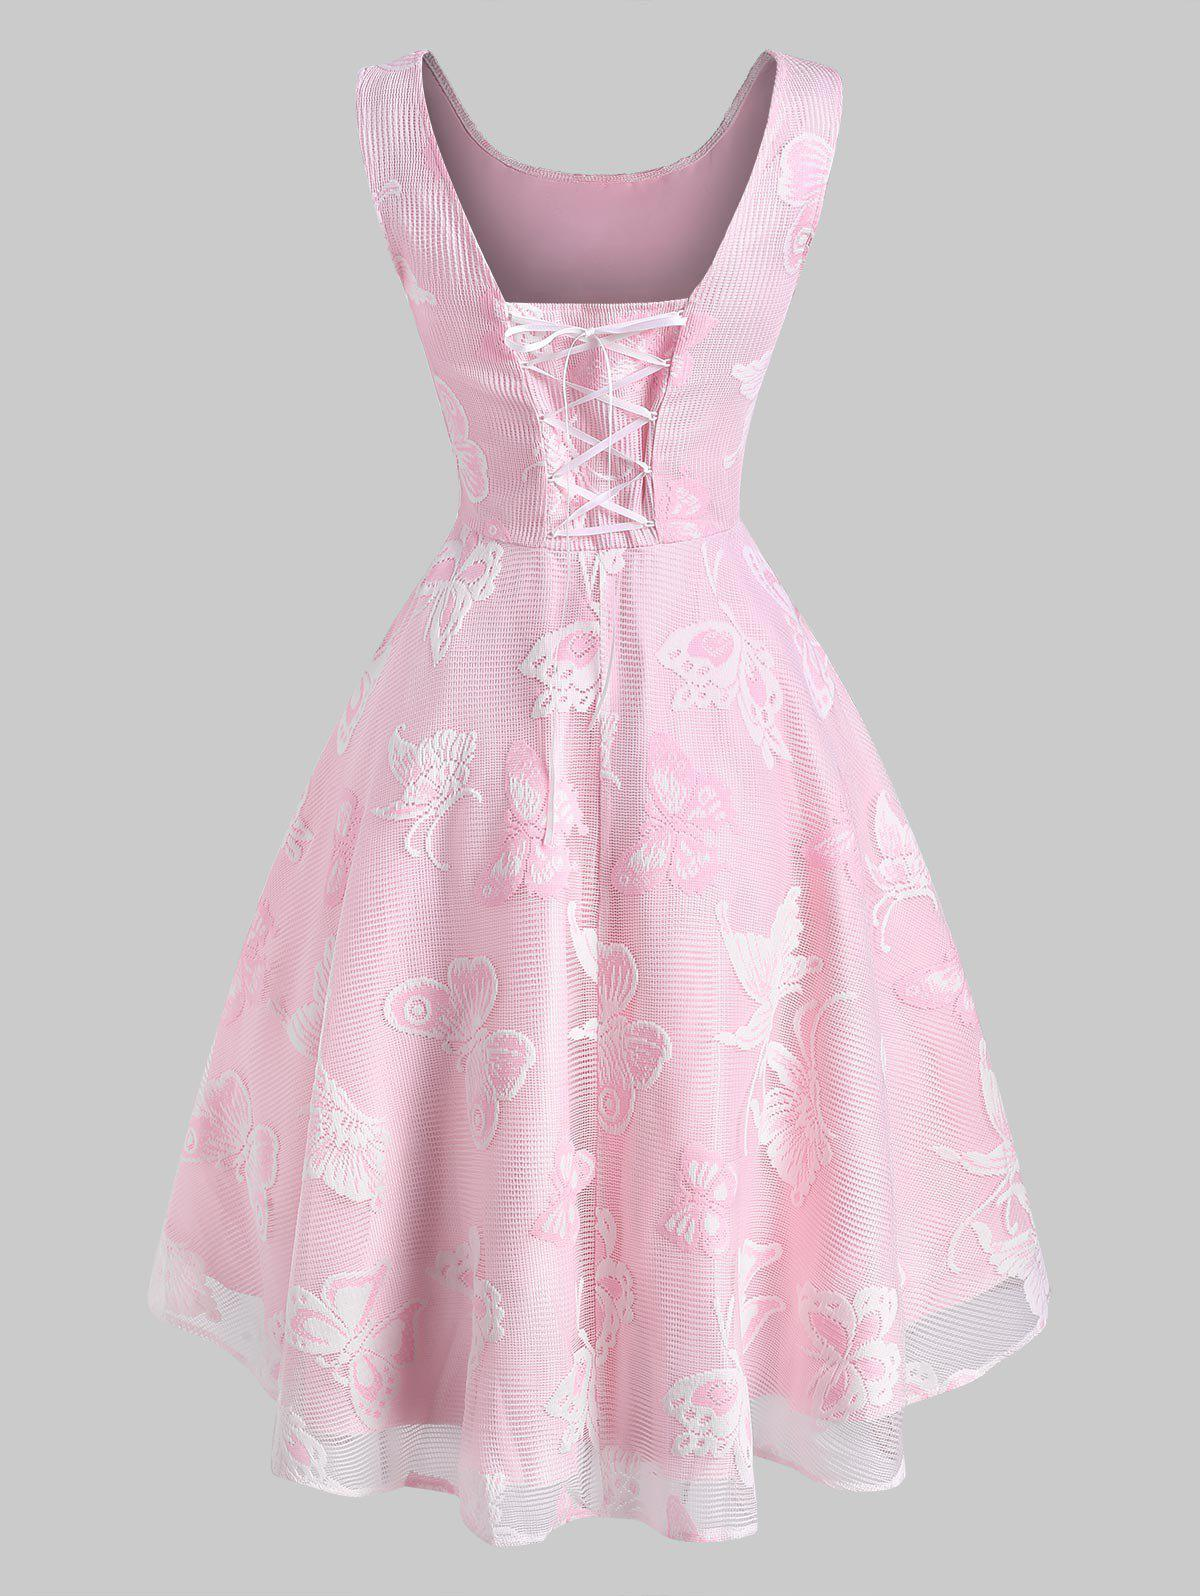 Flower Butterfly Lace Overlay Lace-up High Low Dress - LIGHT PINK L